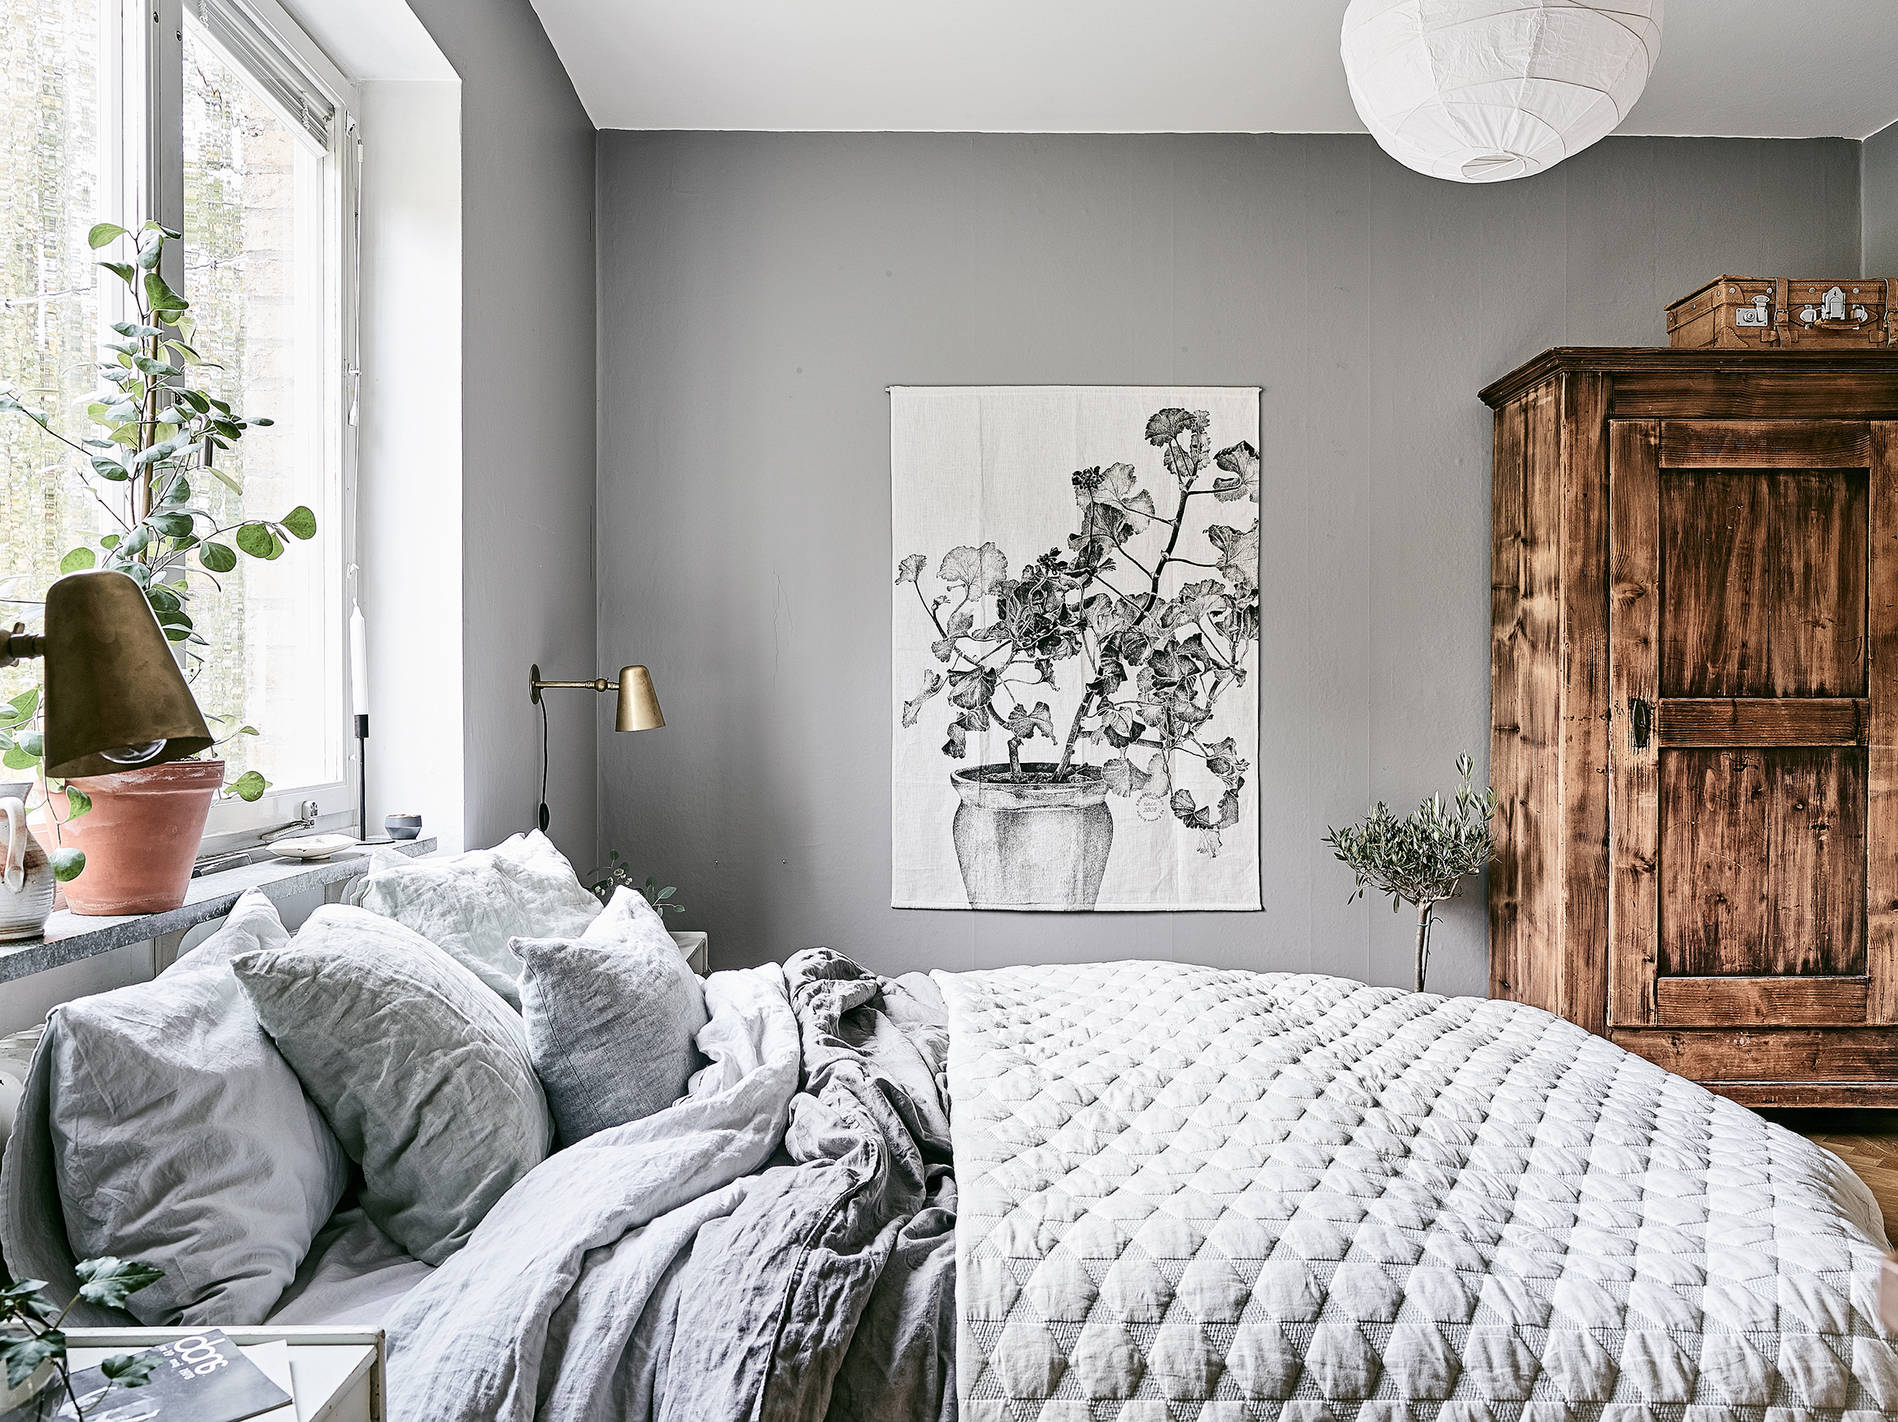 Cozy bedroom in grey coco lapine designcoco lapine design for Bedroom decorating ideas with grey walls